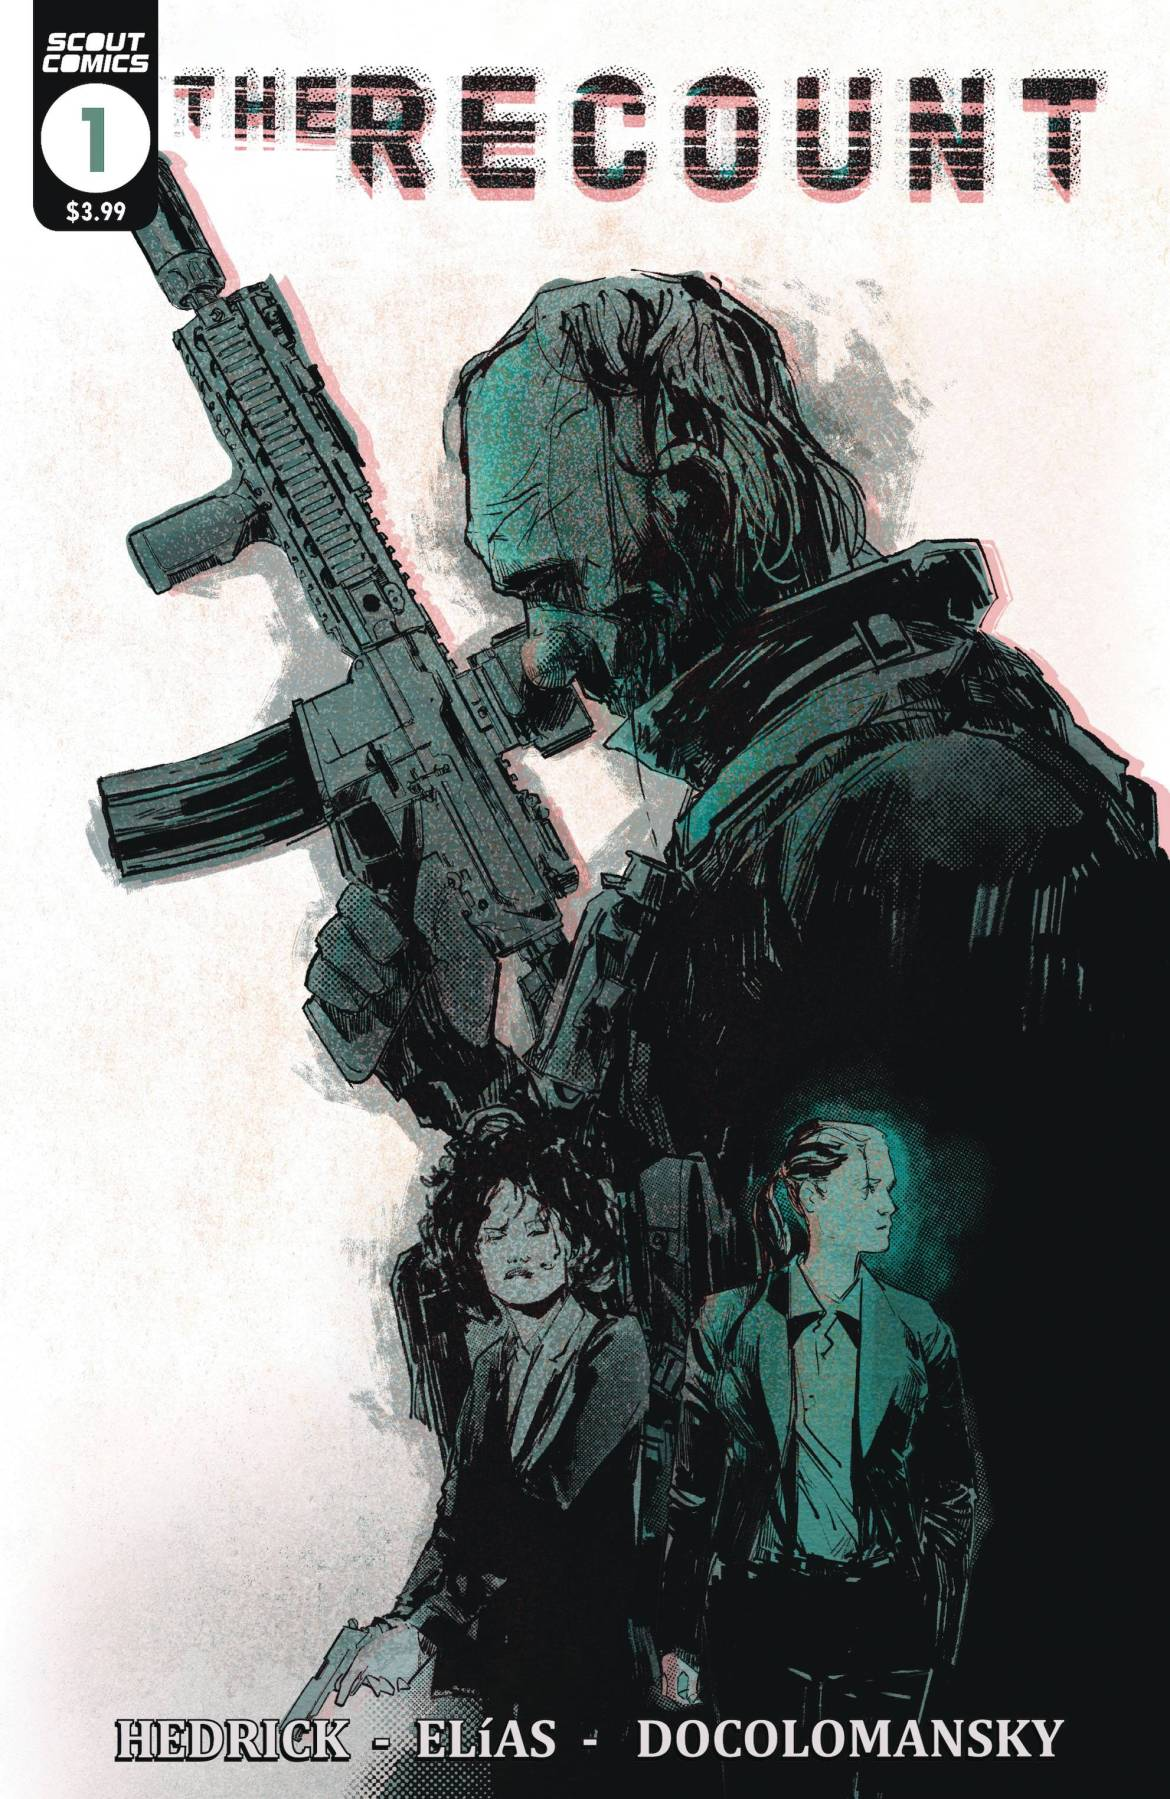 STL166620 ComicList: New Comic Book Releases List for 11/18/2020 (1 Week Out)